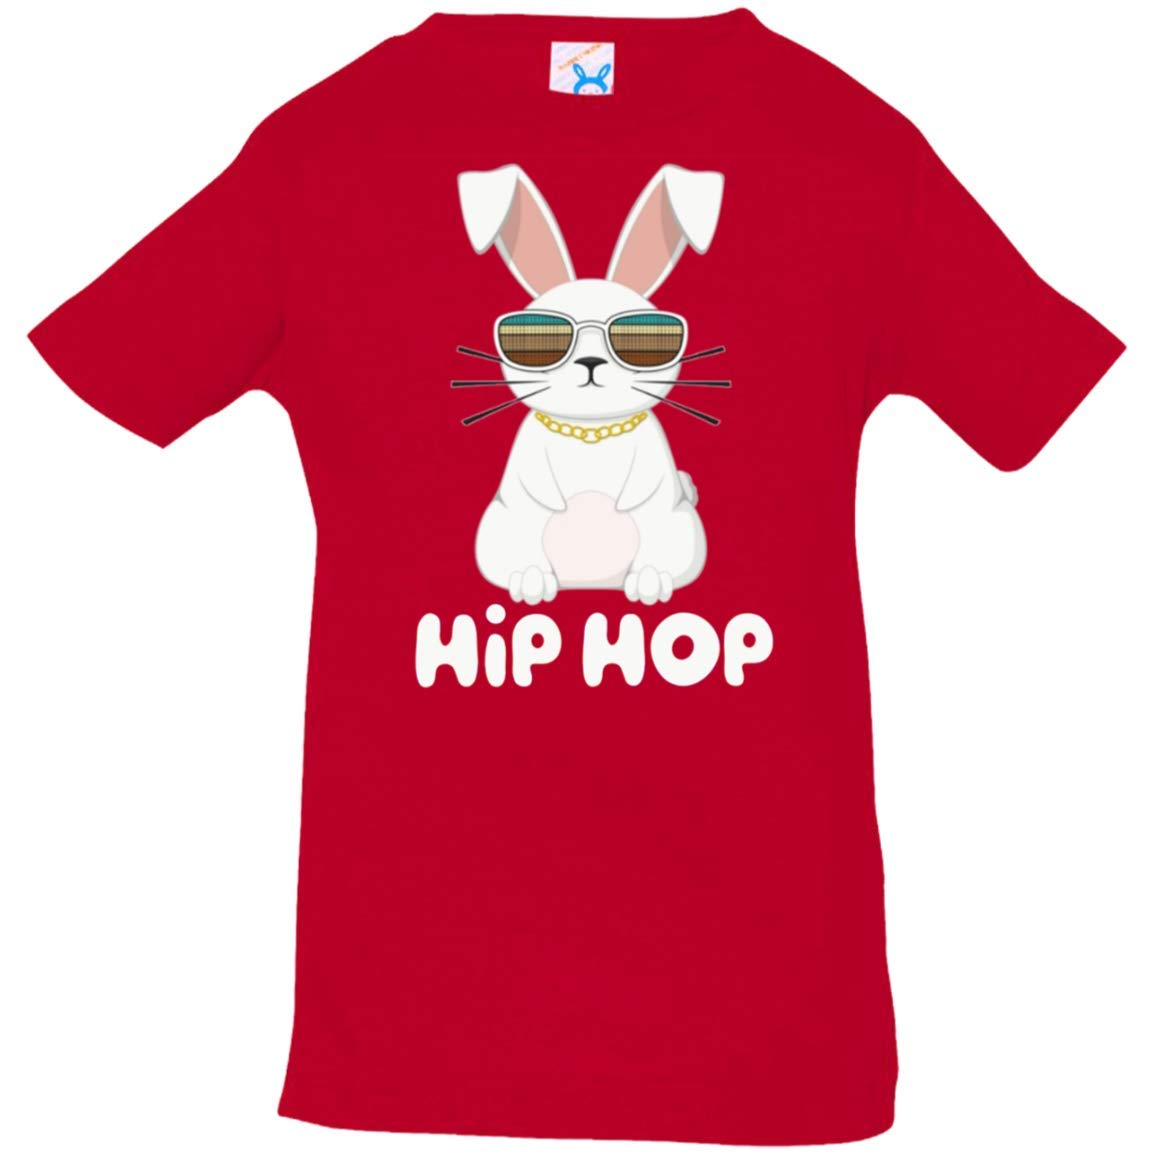 Hip Hop Bunny With Sunglasses Cute Easter Tshirt 3322 Rabbit Skins Infant Tshirtred 12 Months